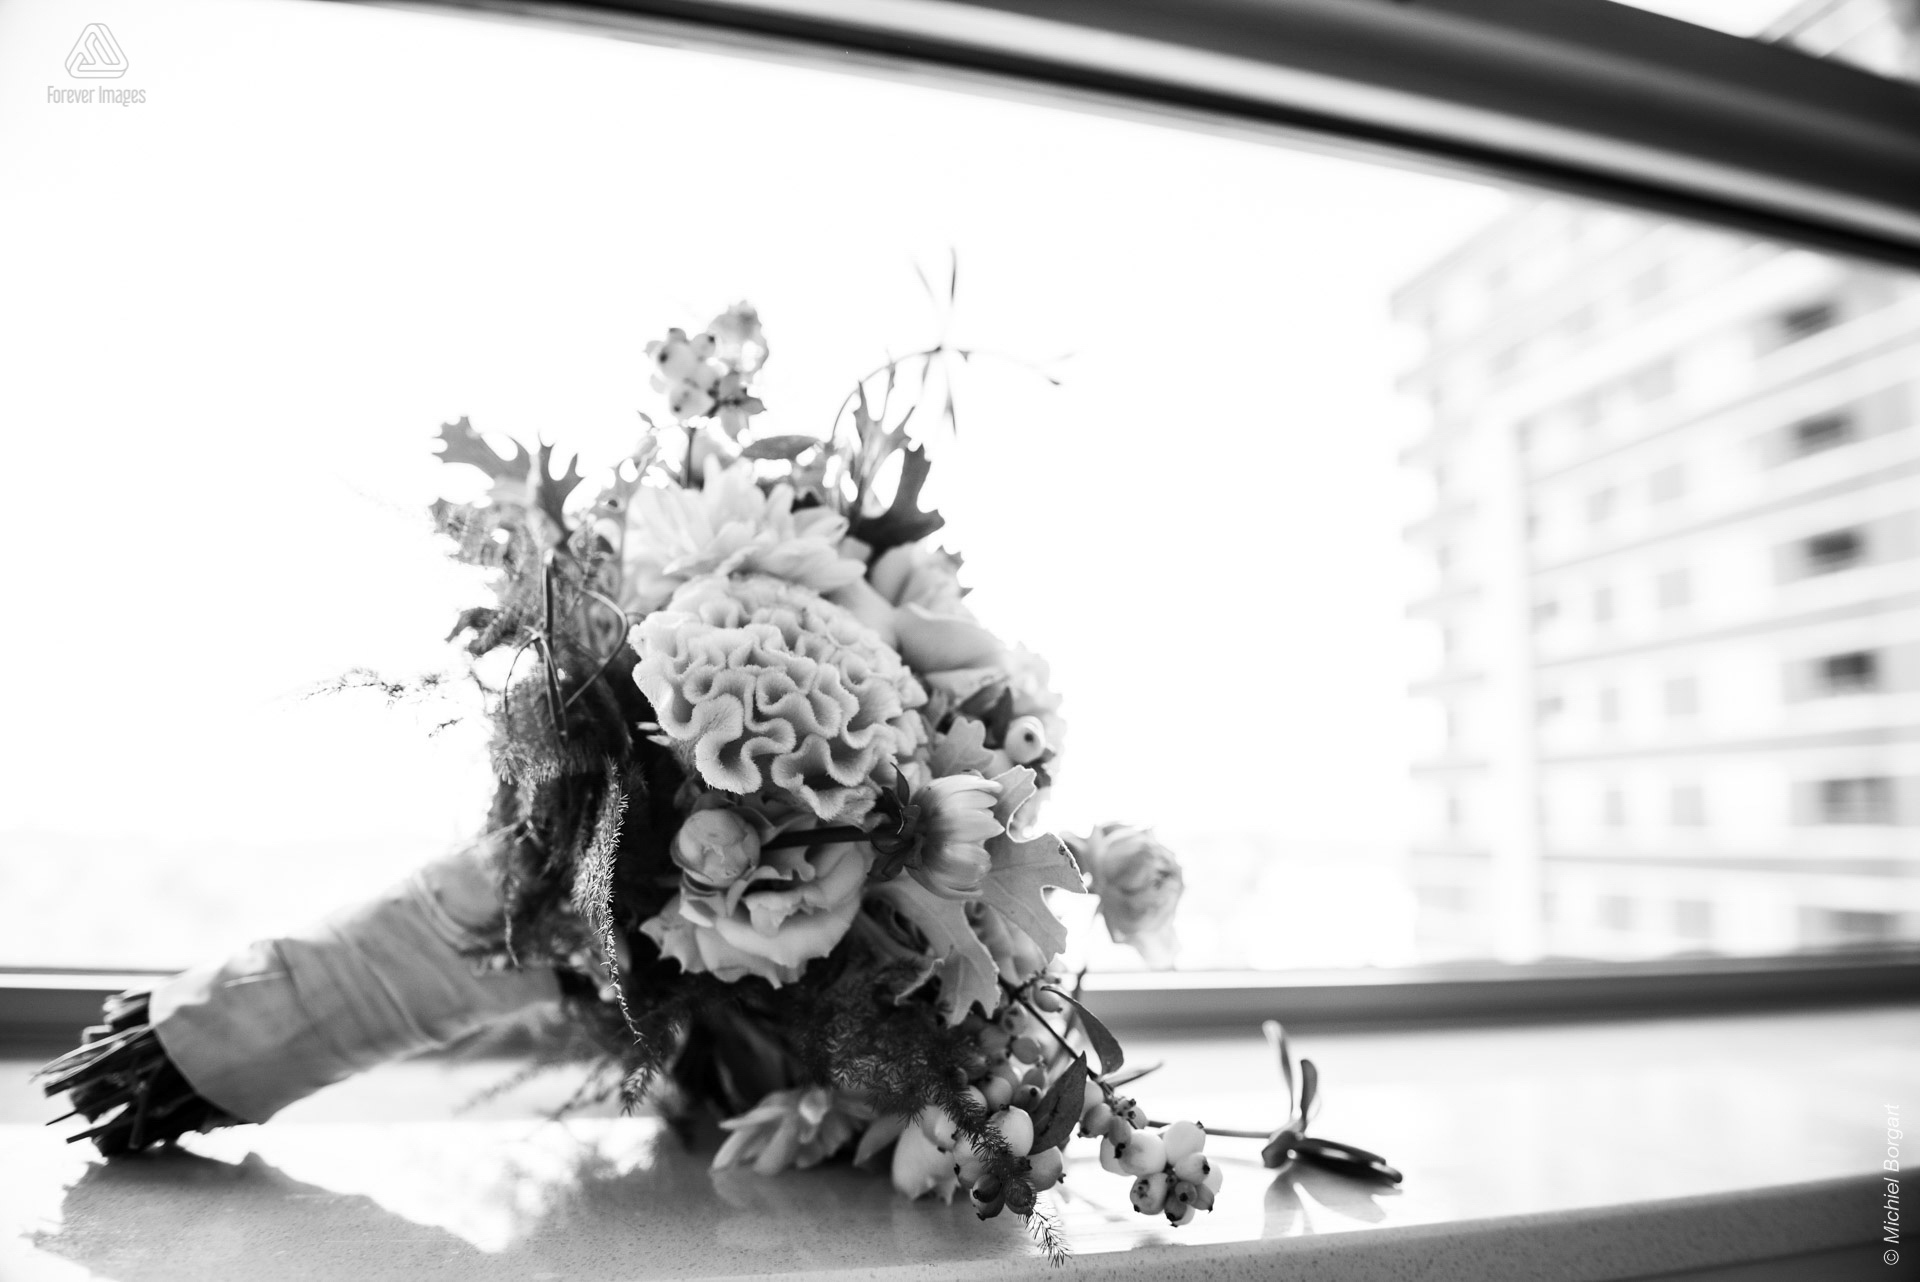 Bridal photo detail black and white wedding bouquet | Wedding Photographer Michiel Borgart - Forever Images.